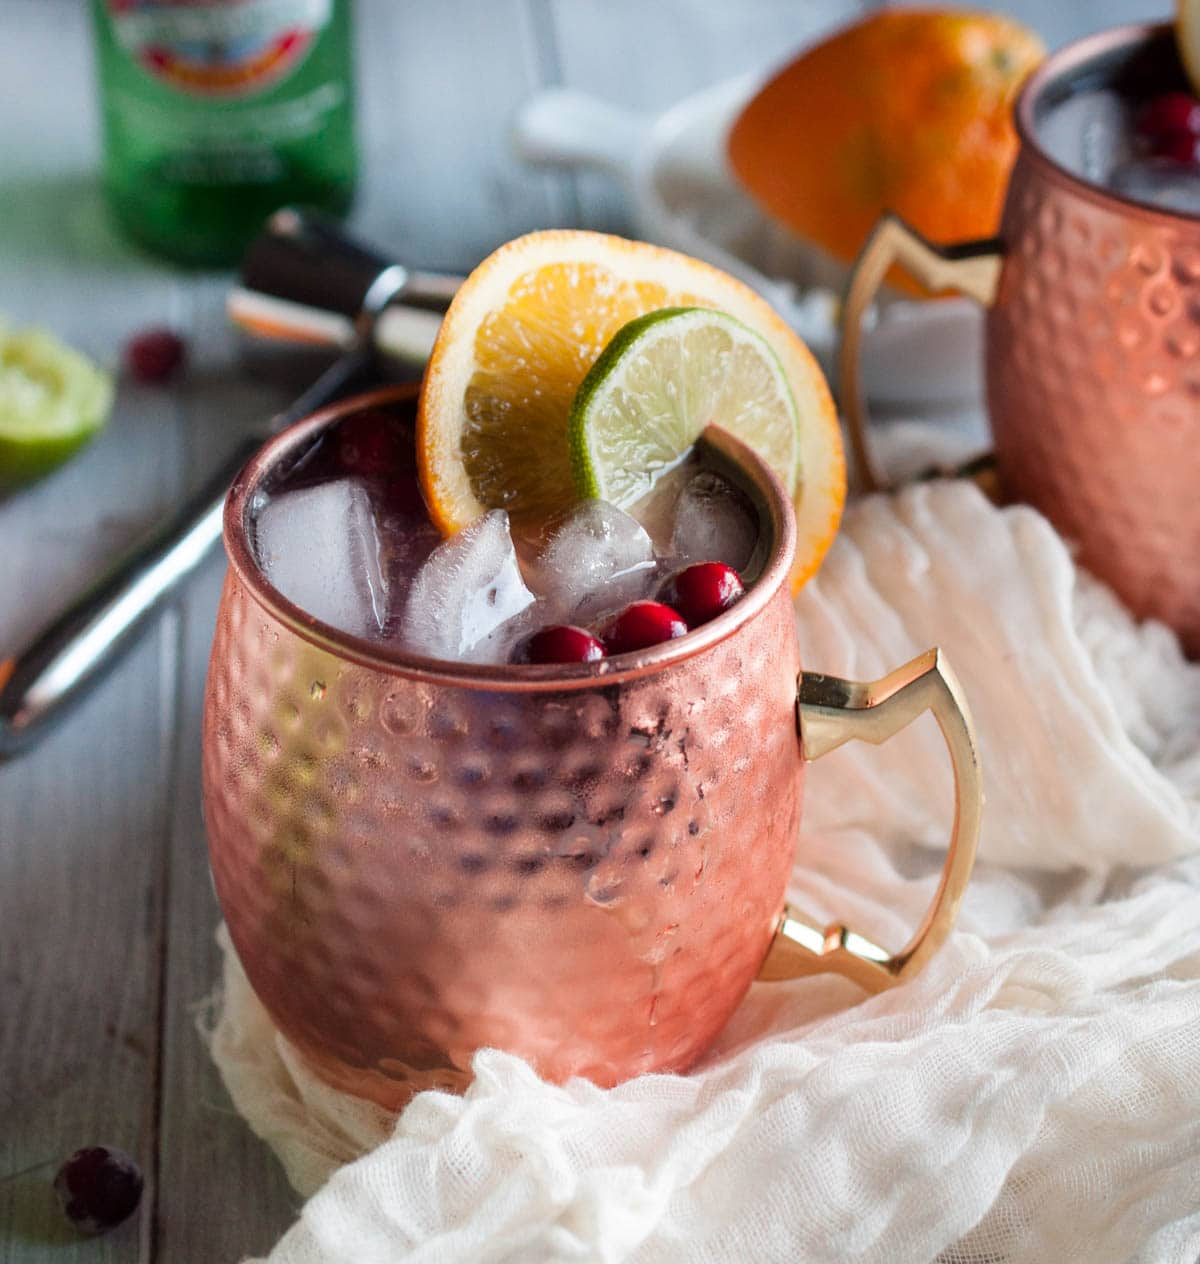 Cranberry Moscow mule recipe made with zesty orange, zippy ginger beer, vodka, lime, and cranberry just might be the most refreshing drink on the planet. Try one today!